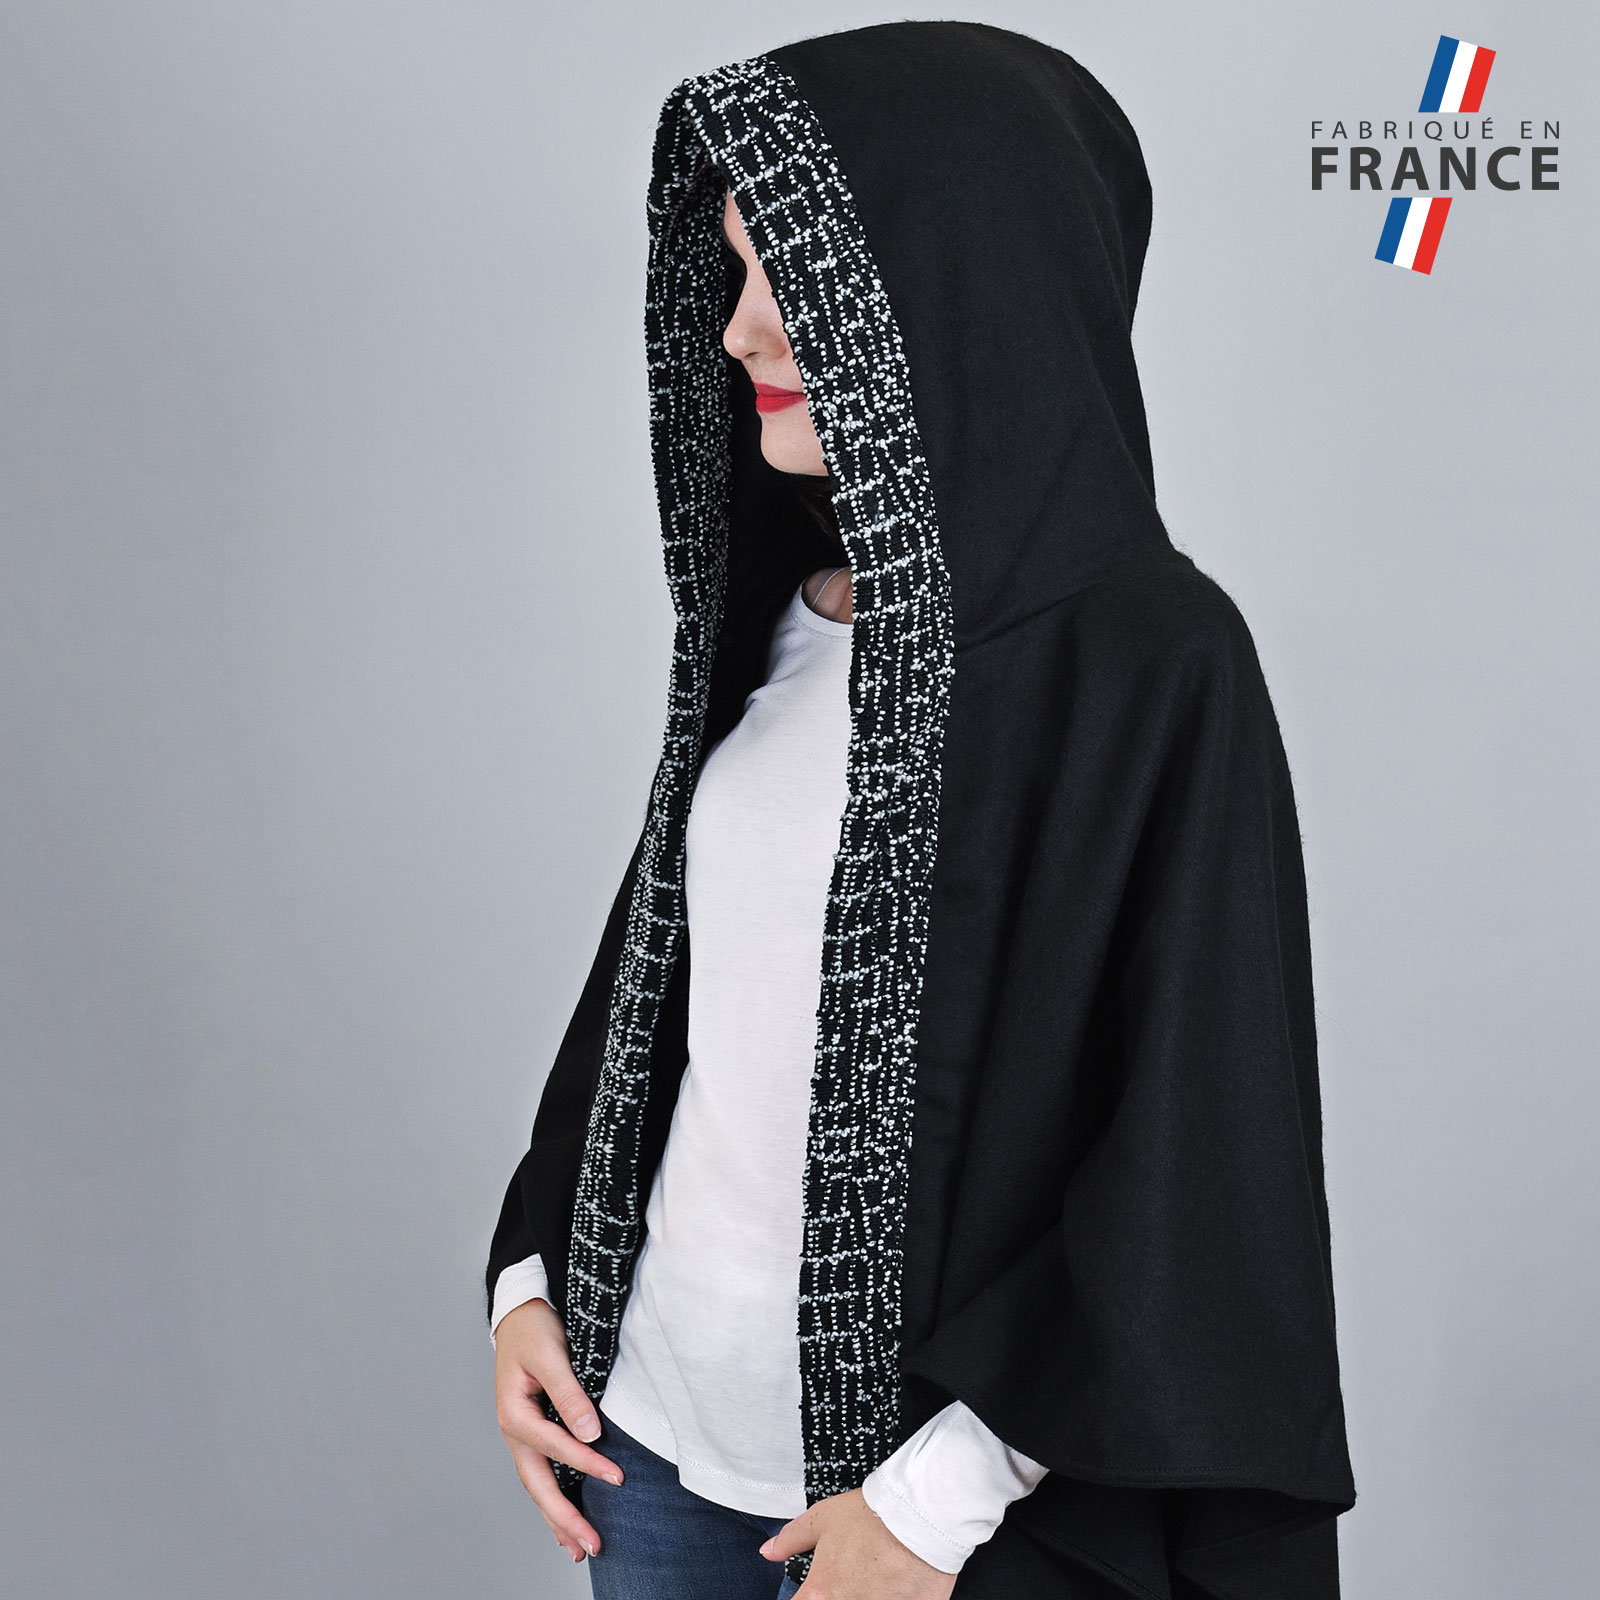 AT-03248-VF16-2-LB_FR-poncho-femme-perles-gris-fabrication-francaise